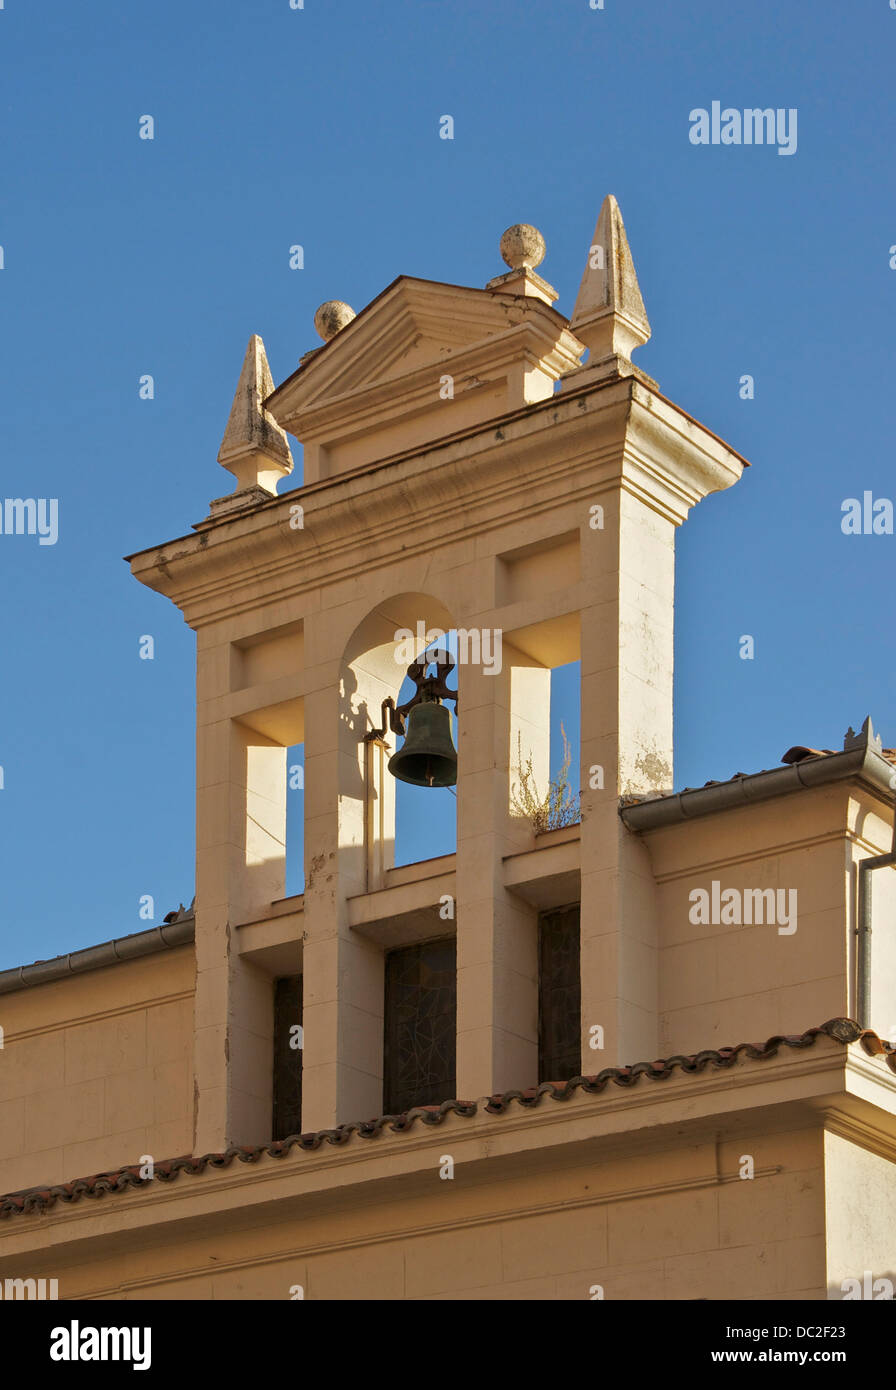 The bell gable of the Old main Synagogue (now a church) of Segovia, Spain. - Stock Image